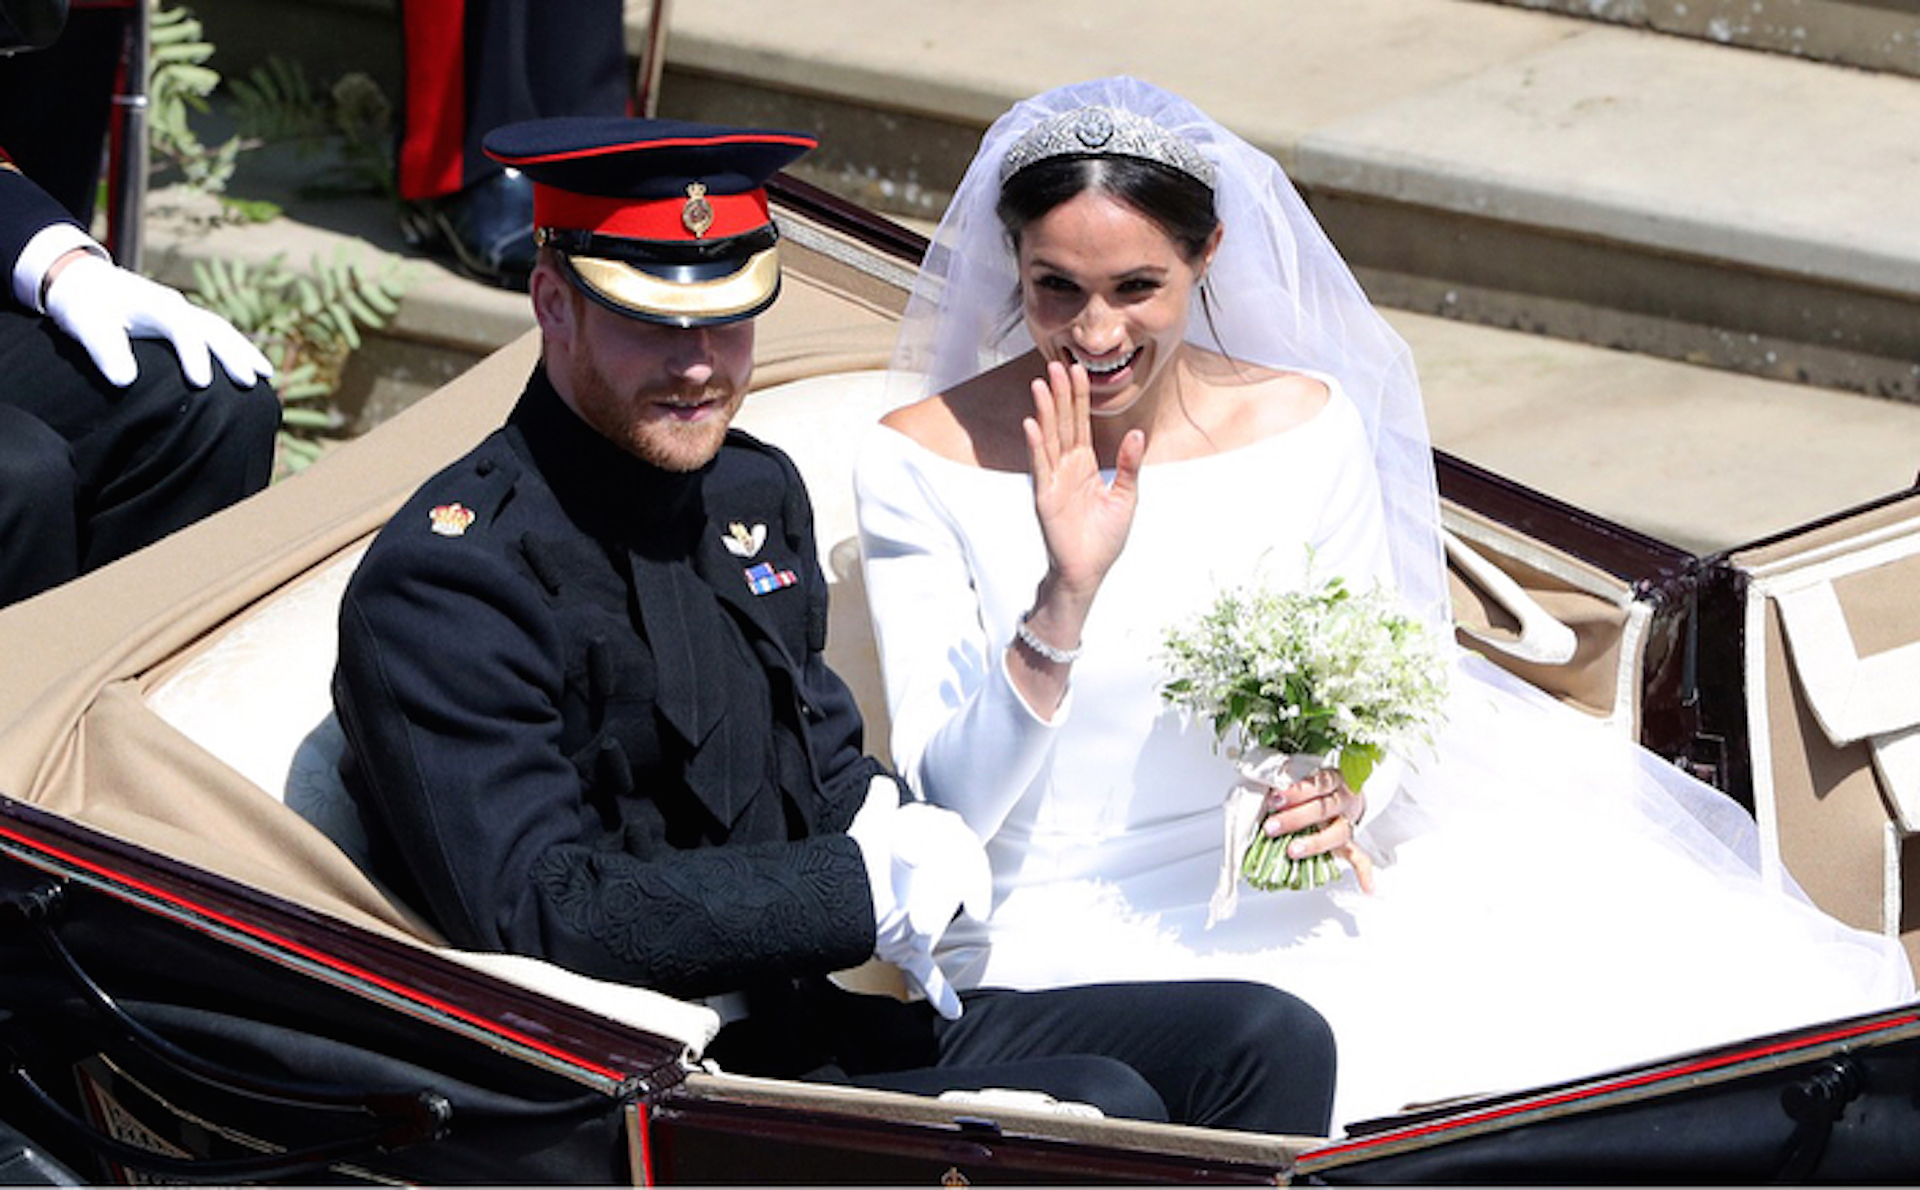 https://s3.amazonaws.com/arc-wordpress-client-uploads/infobae-wp/wp-content/uploads/2018/05/19181408/GENTE-boda-real-principe-harry-meghan-markle-carruaje-1.jpg